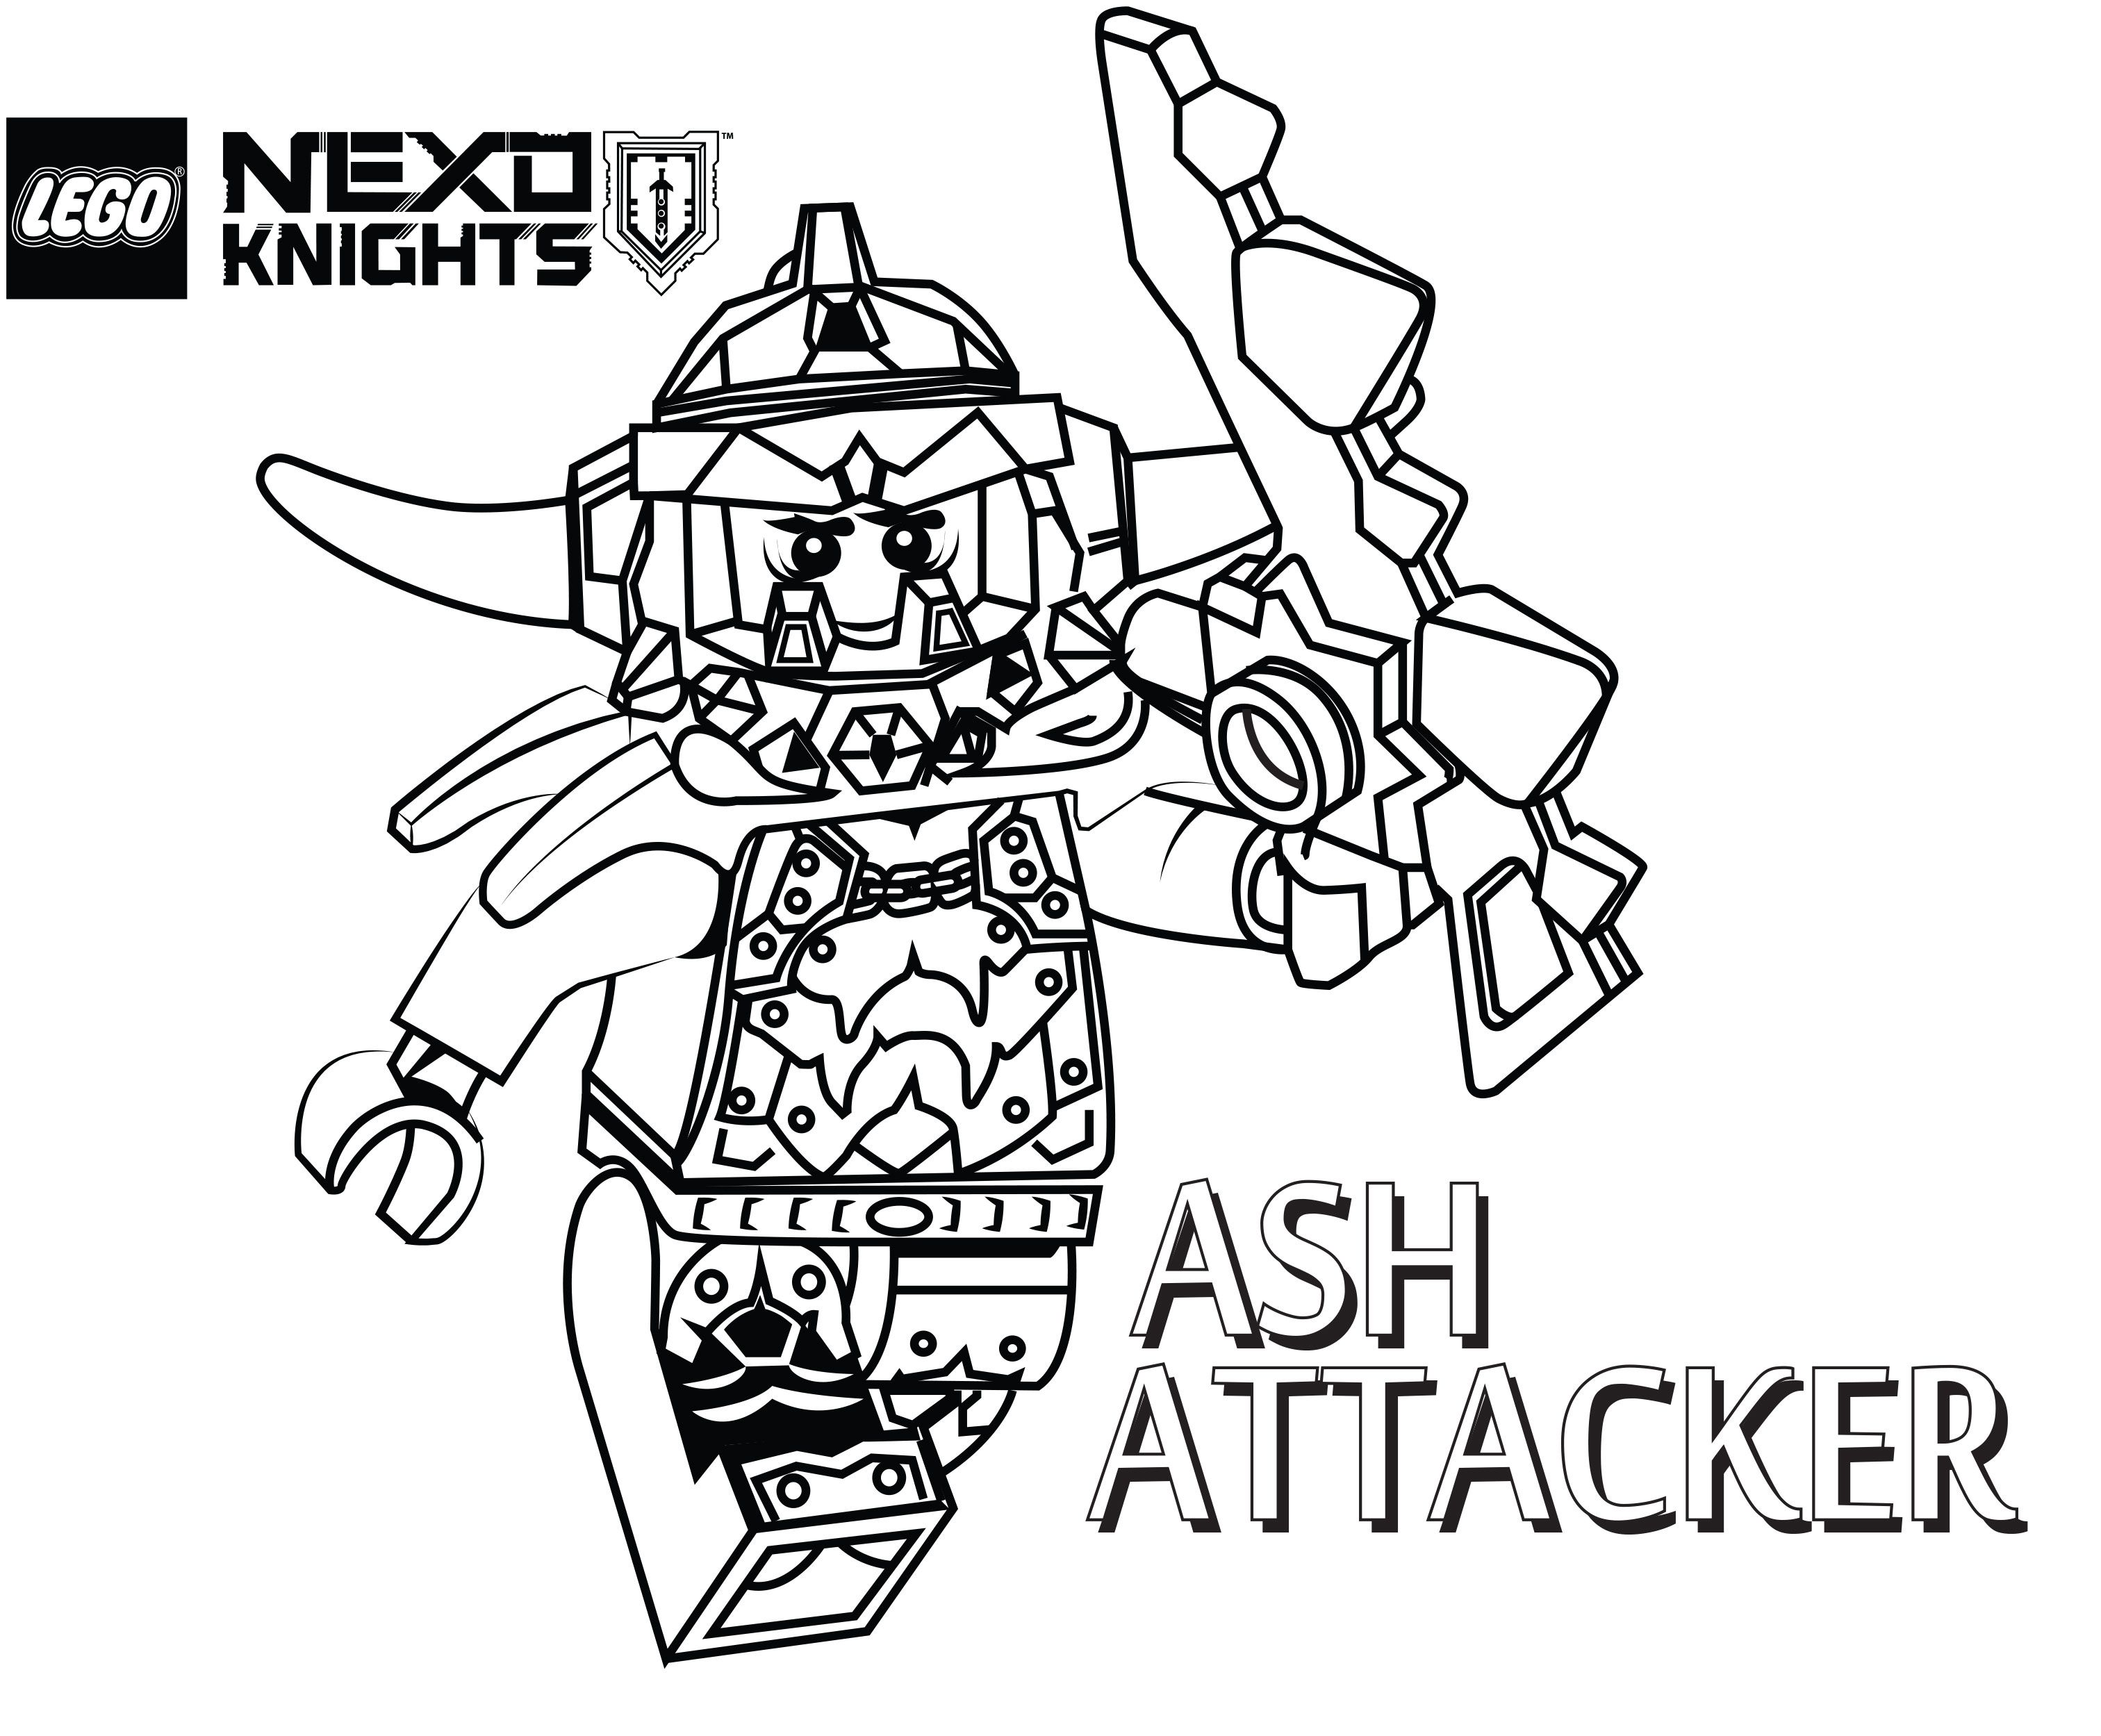 Nexo Lego Knights Coloring Pages Sketch Coloring Page - Coloring Home